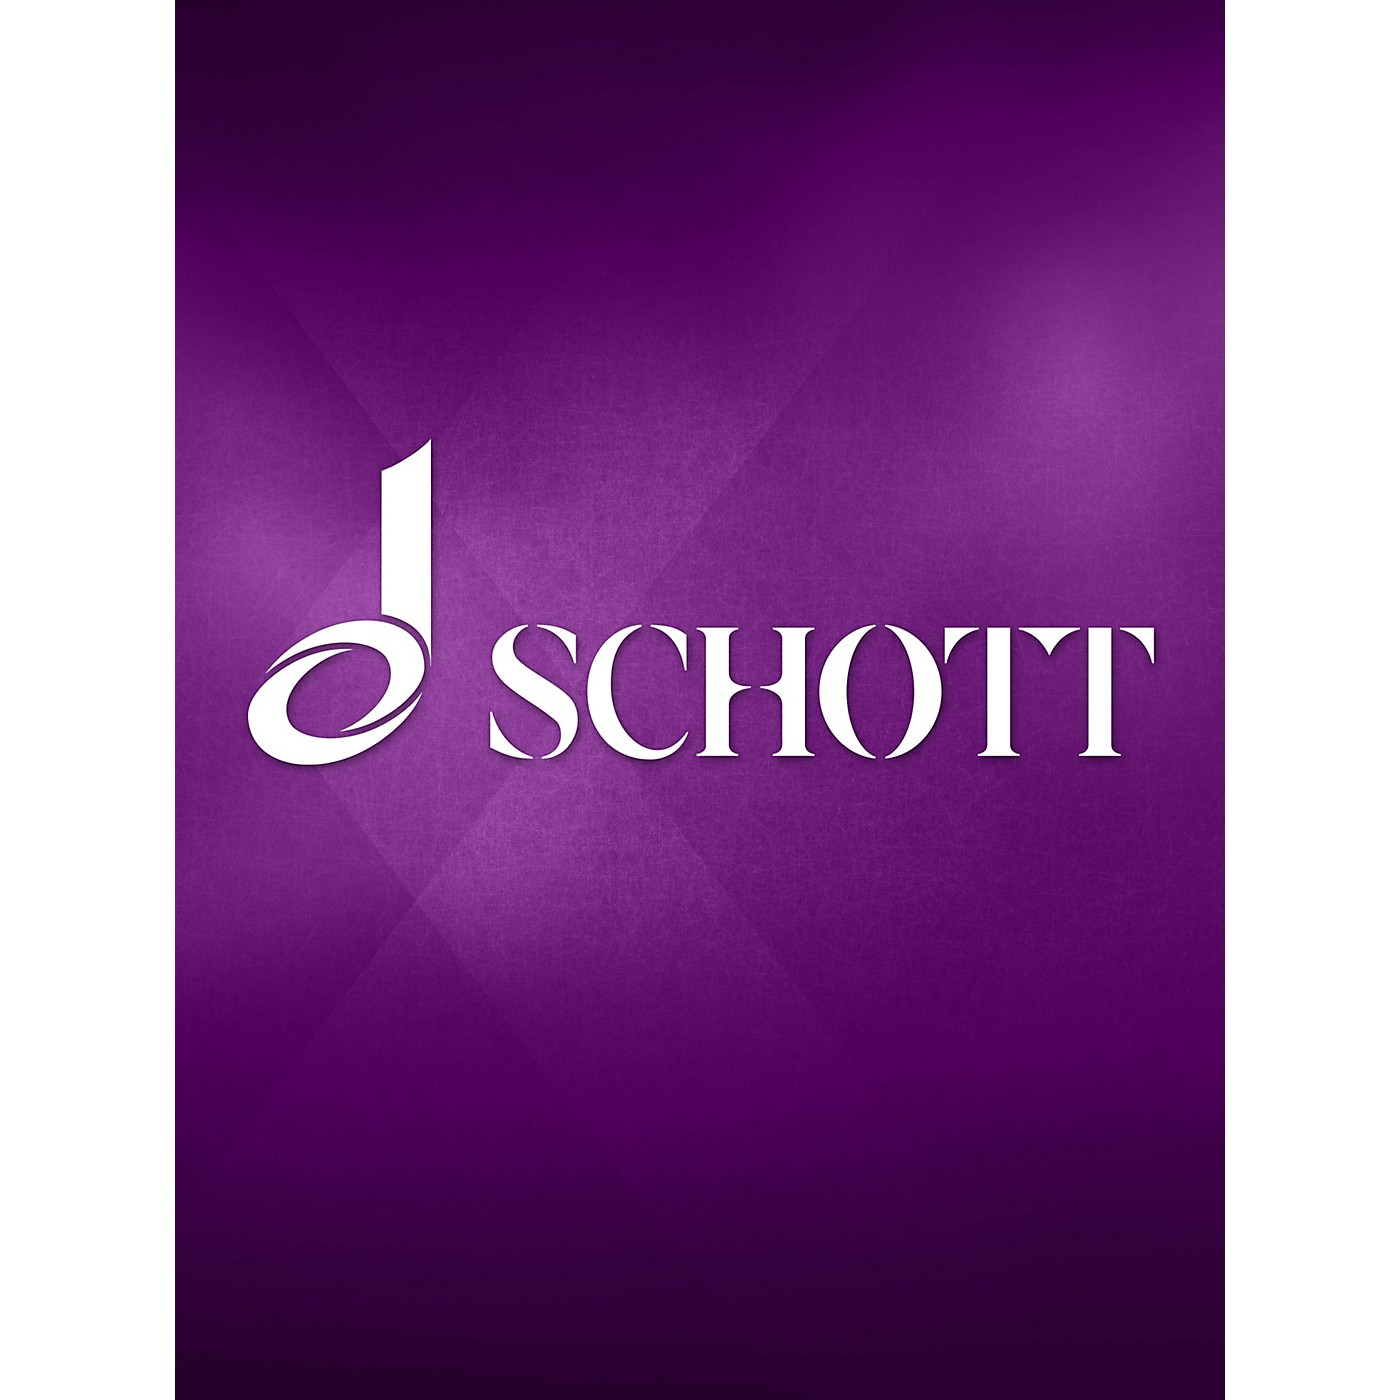 Schott Symphony in B Flat Major for Concert Band (Baritone Bass Clef Part) Schott Series by Paul Hindemith thumbnail